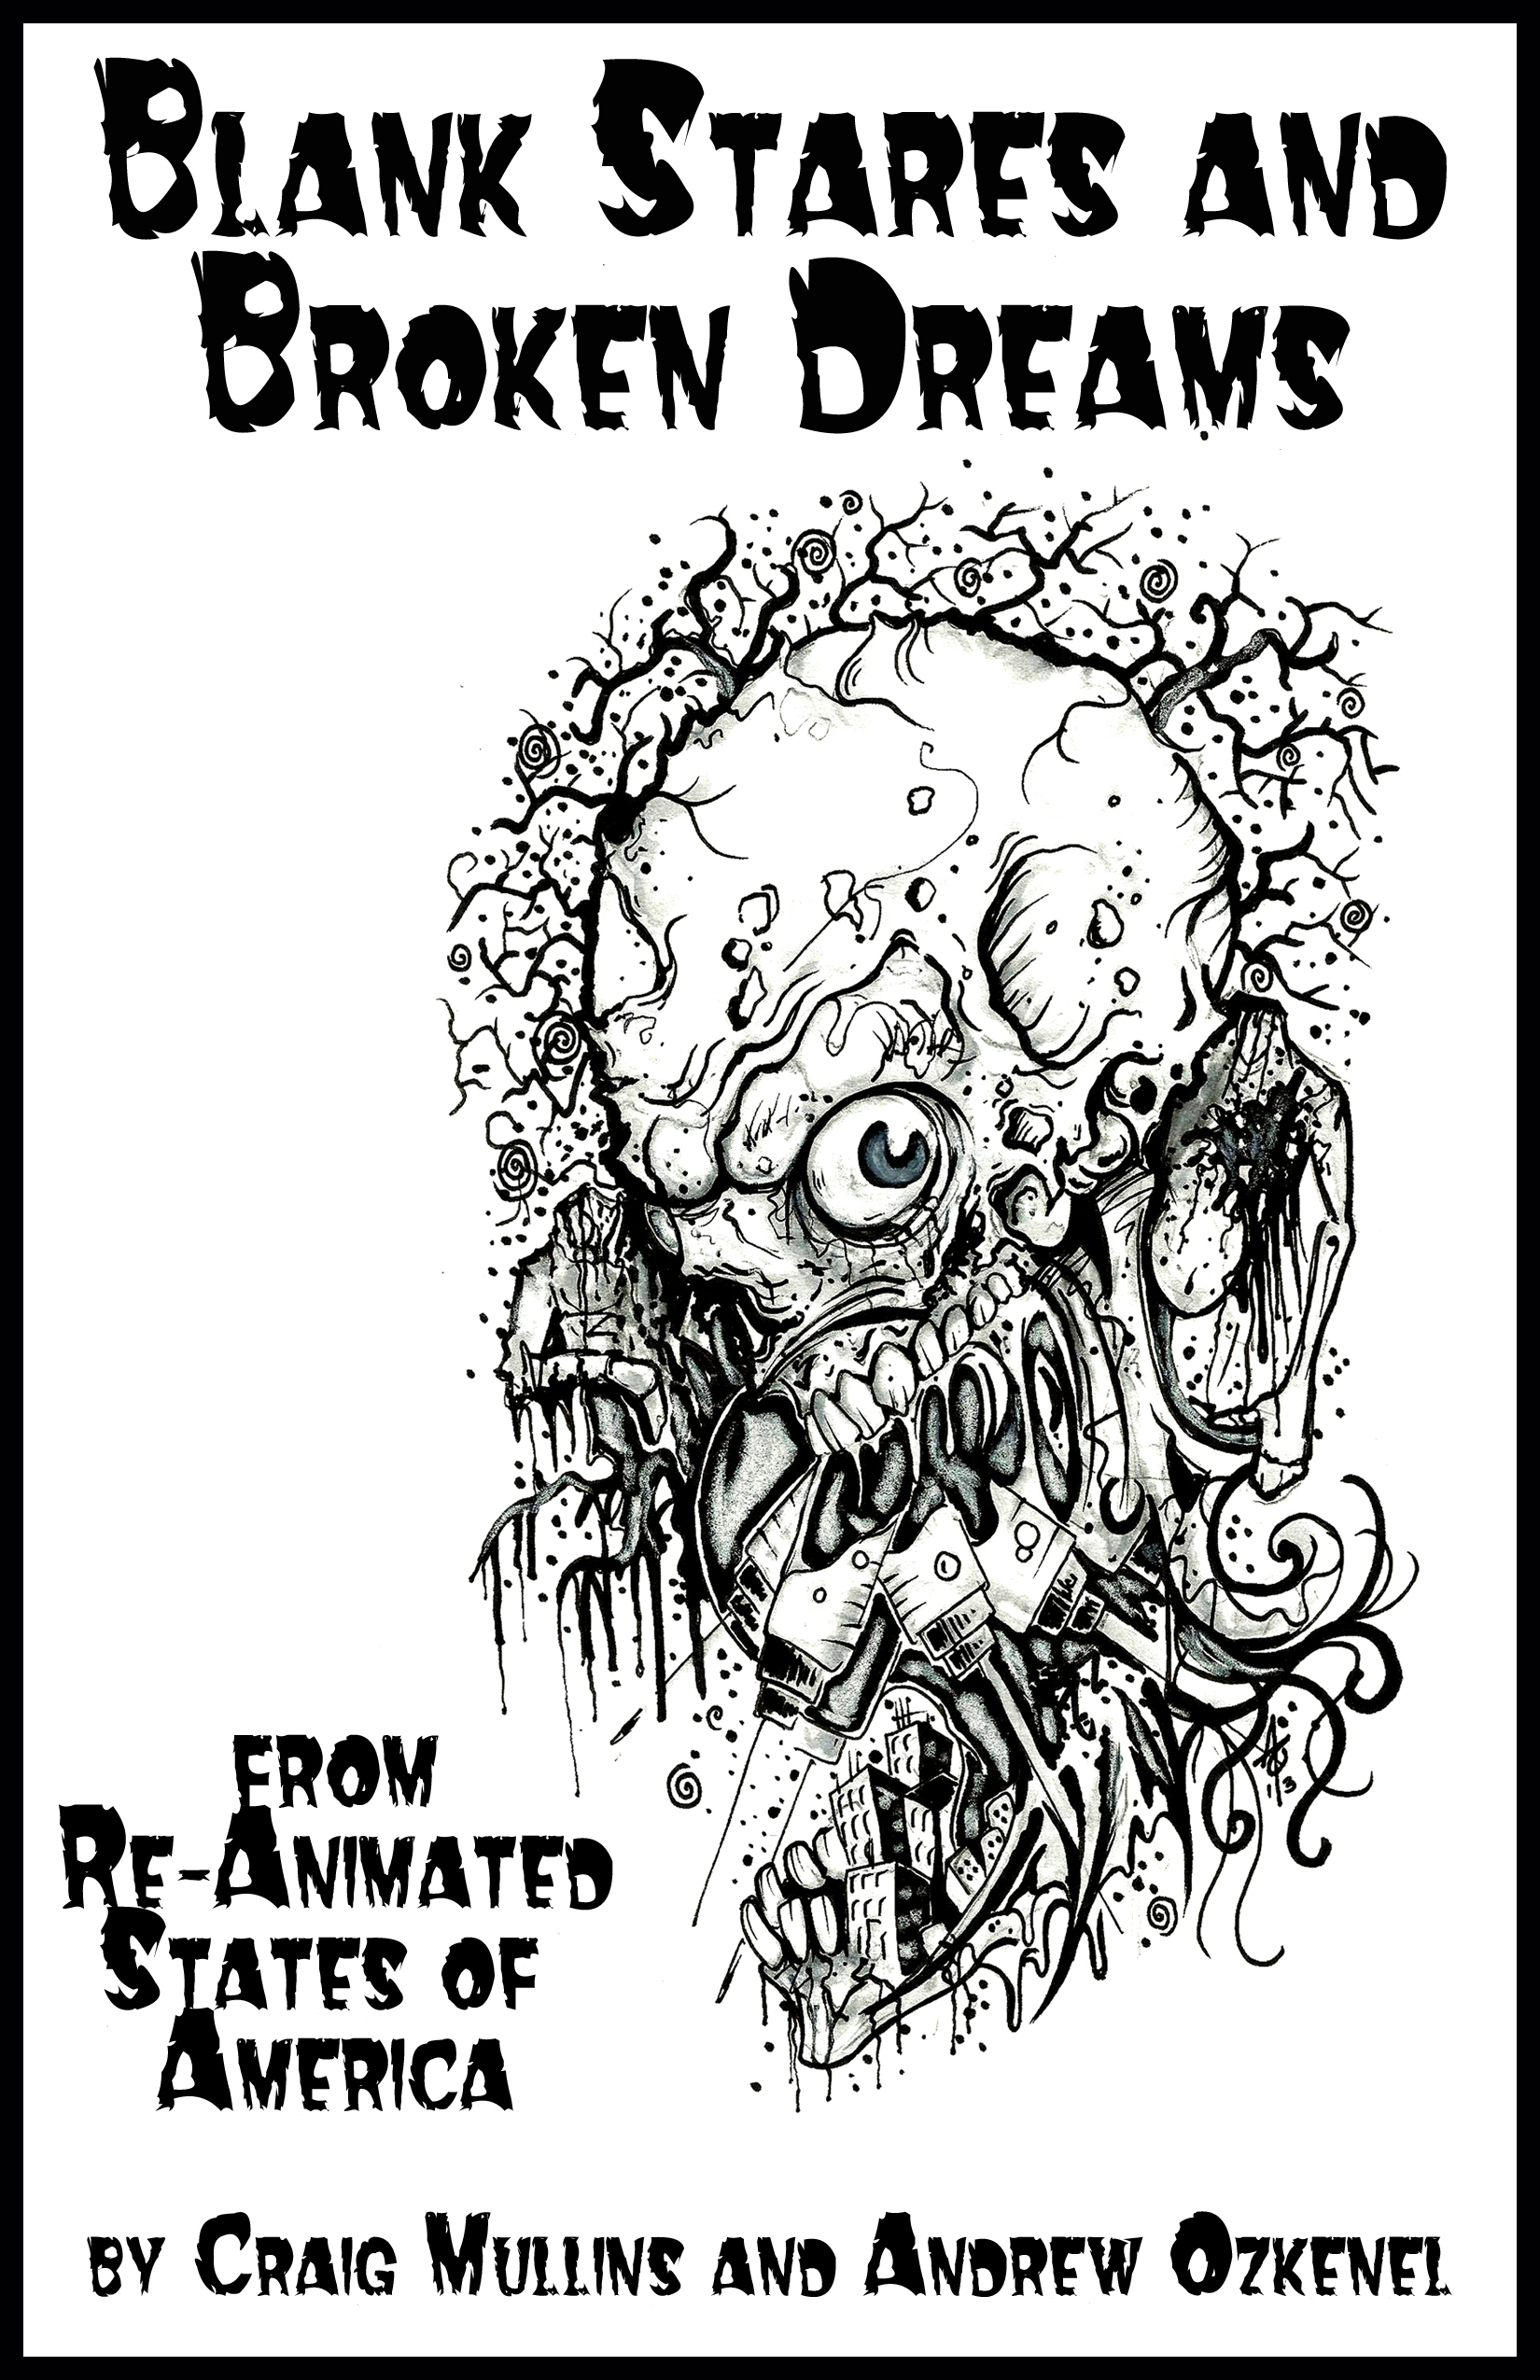 Like Lovecraft? Check out Re-Animated States of America